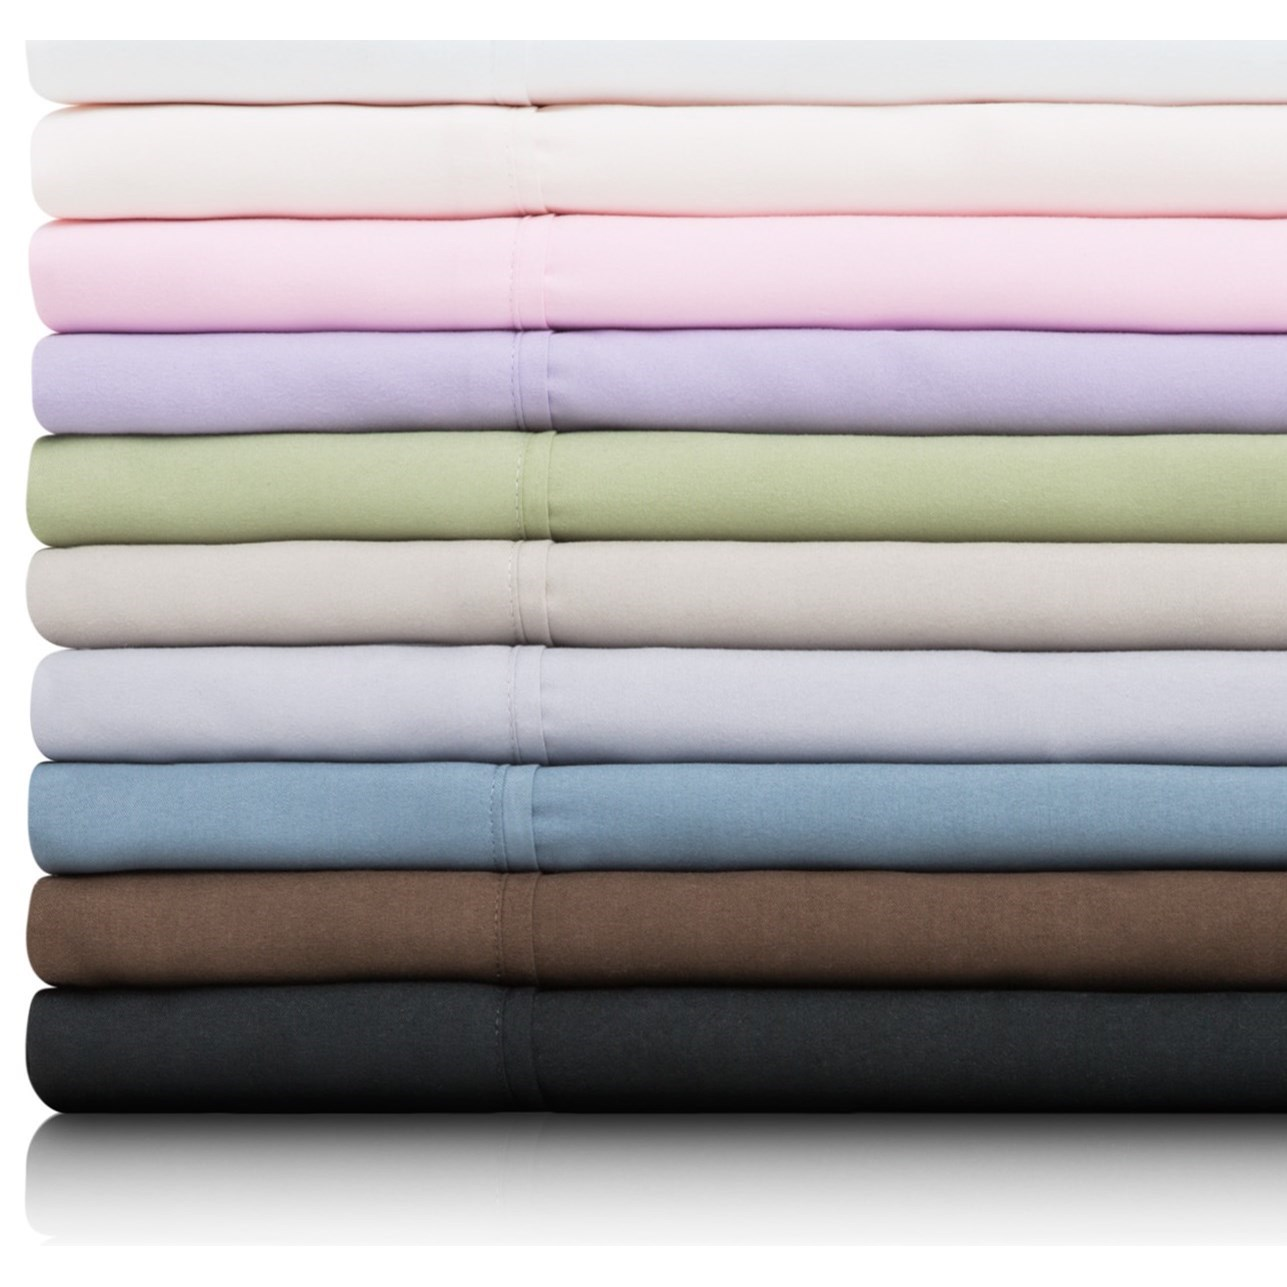 Brushed Microfiber King Woven™ Brushed Microfiber Sheet Set by Malouf at Northeast Factory Direct